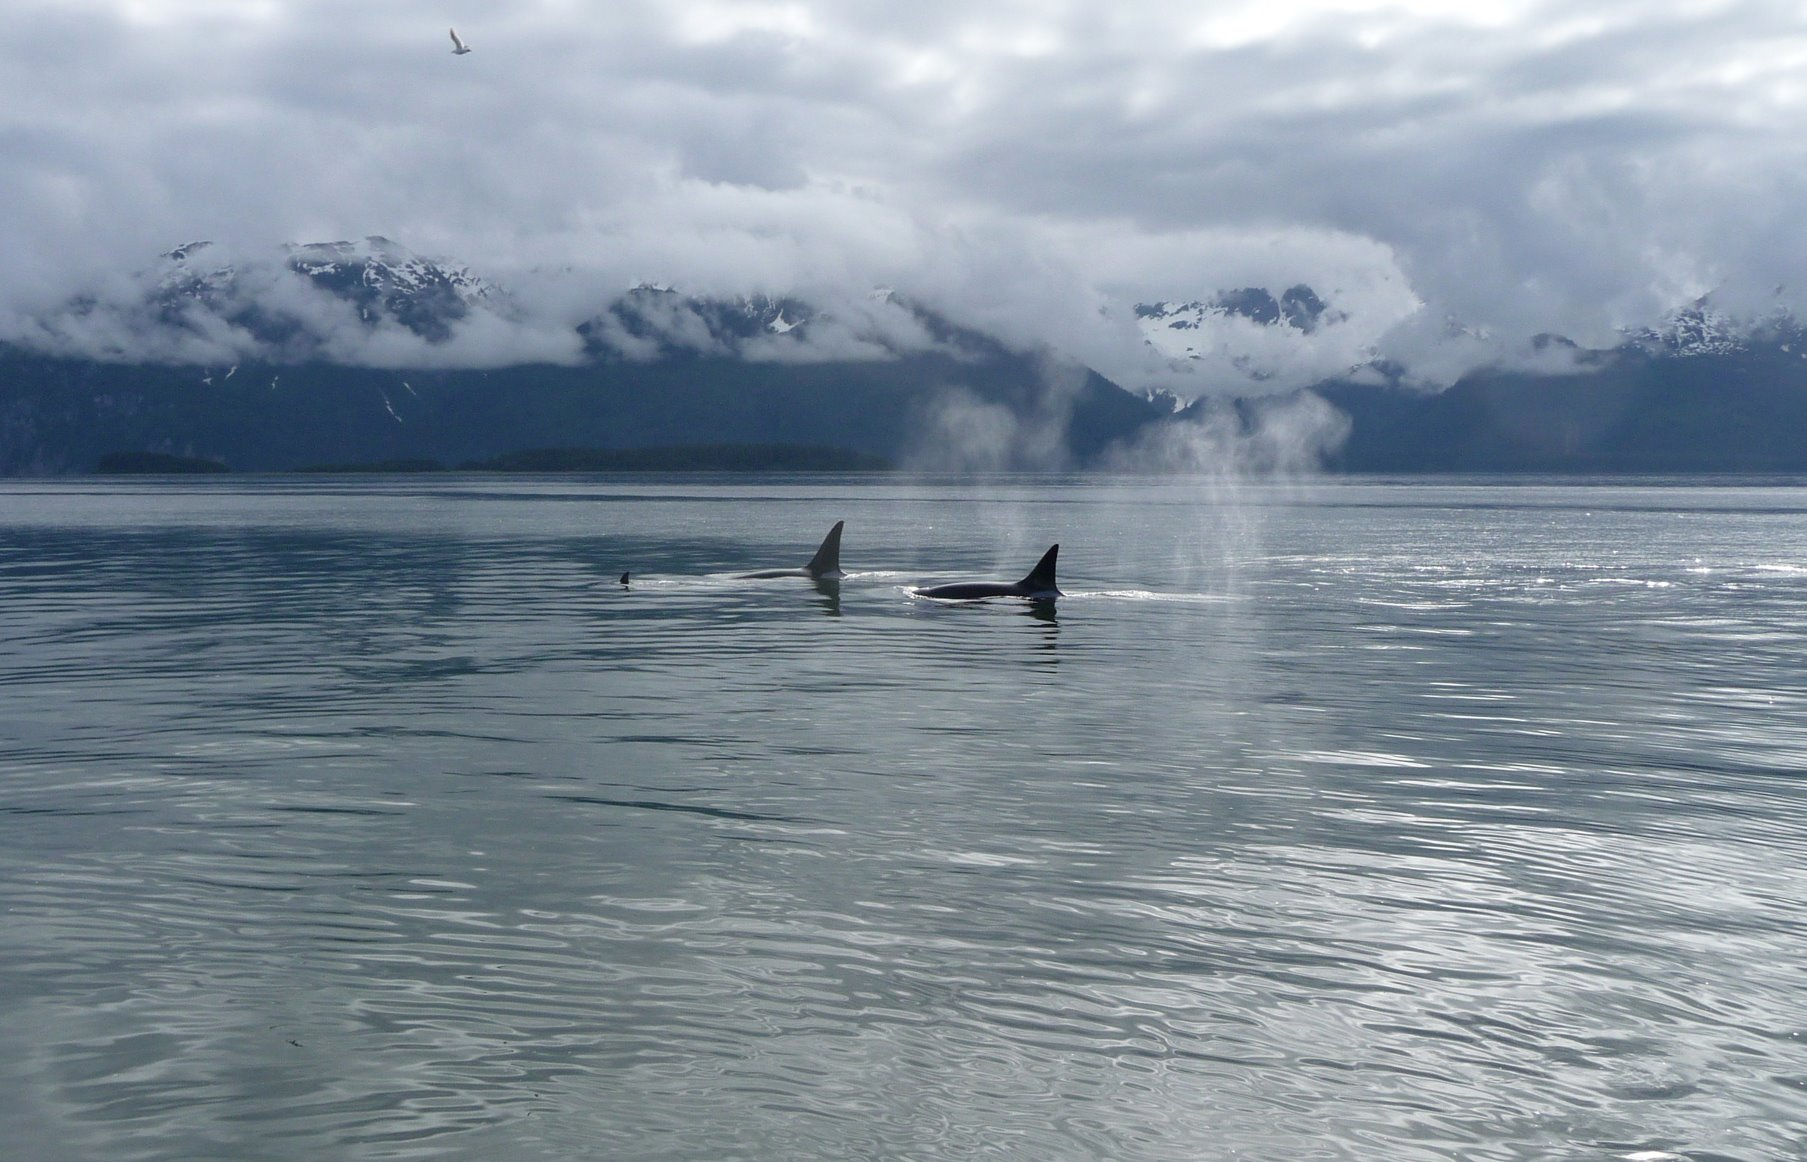 Orca whales - the largest member of the dolphin family.